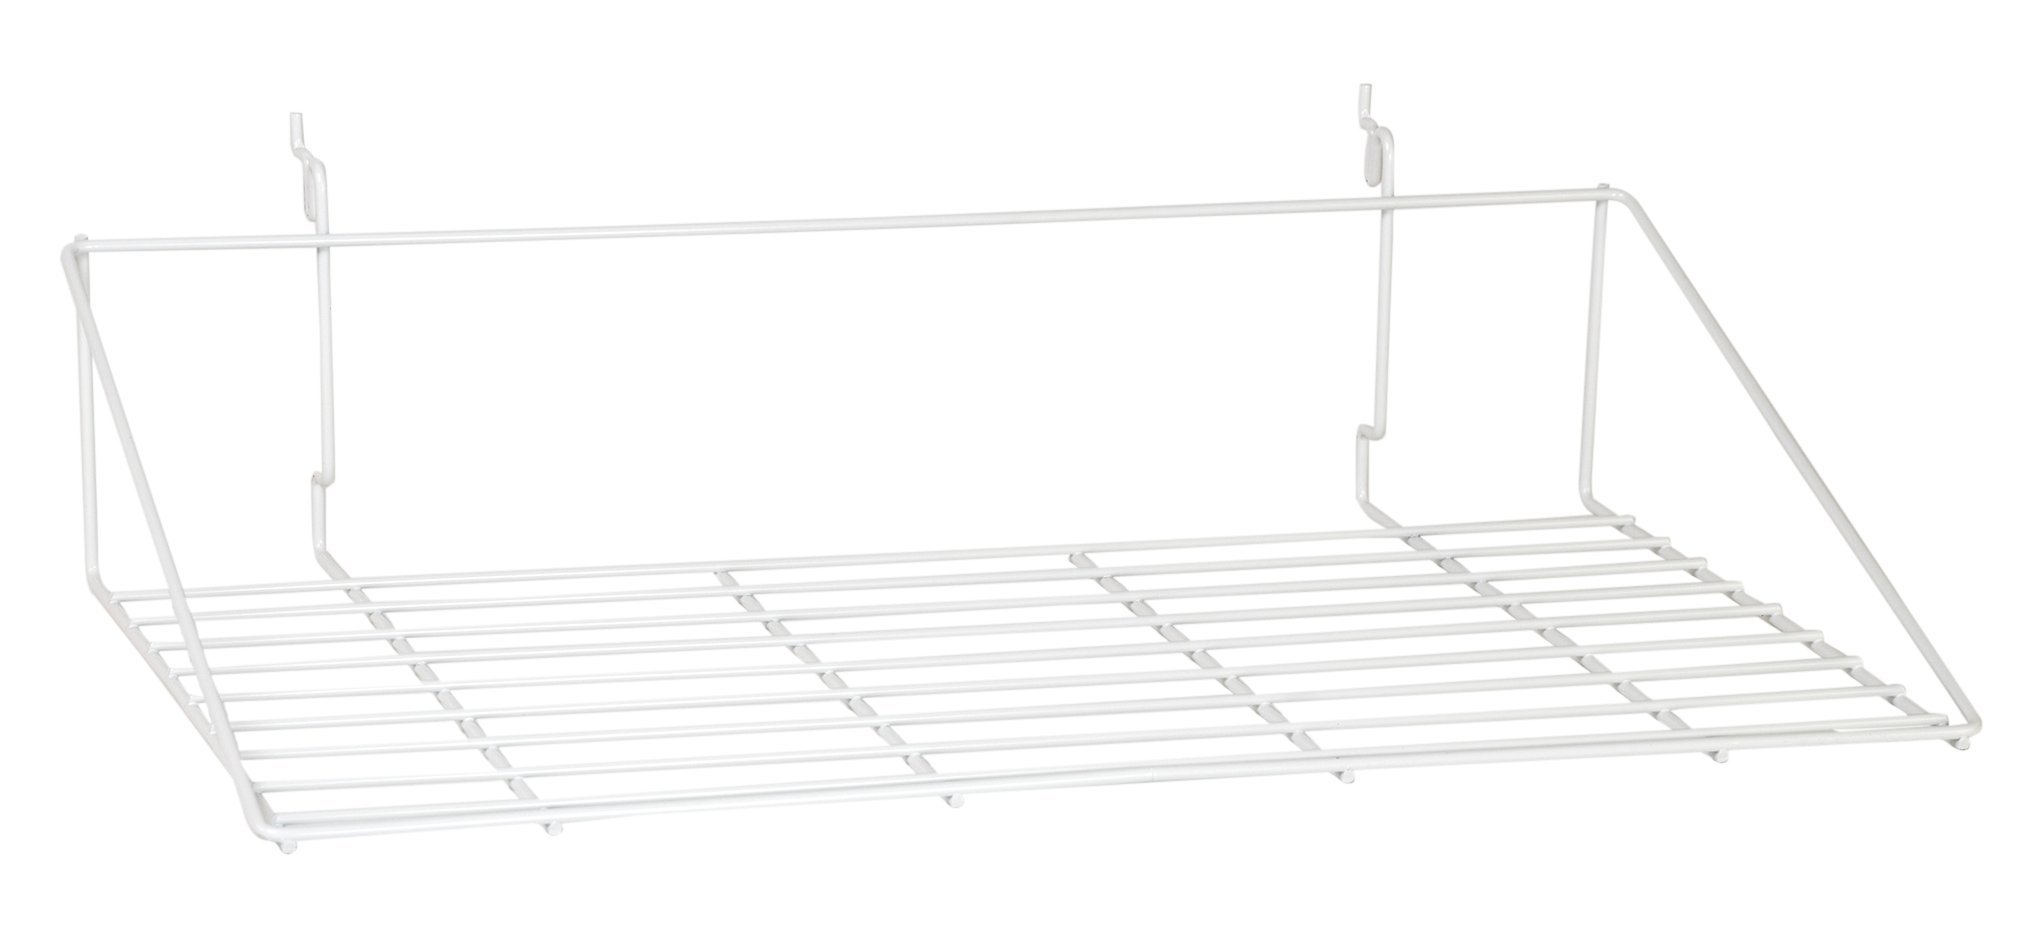 KC Store Fixtures A03063 Double Shirt Shelf Fits Slatwall, Grid, Pegboard, 23-1/2'' W x 13-1/2'' D, White (Pack of 10)